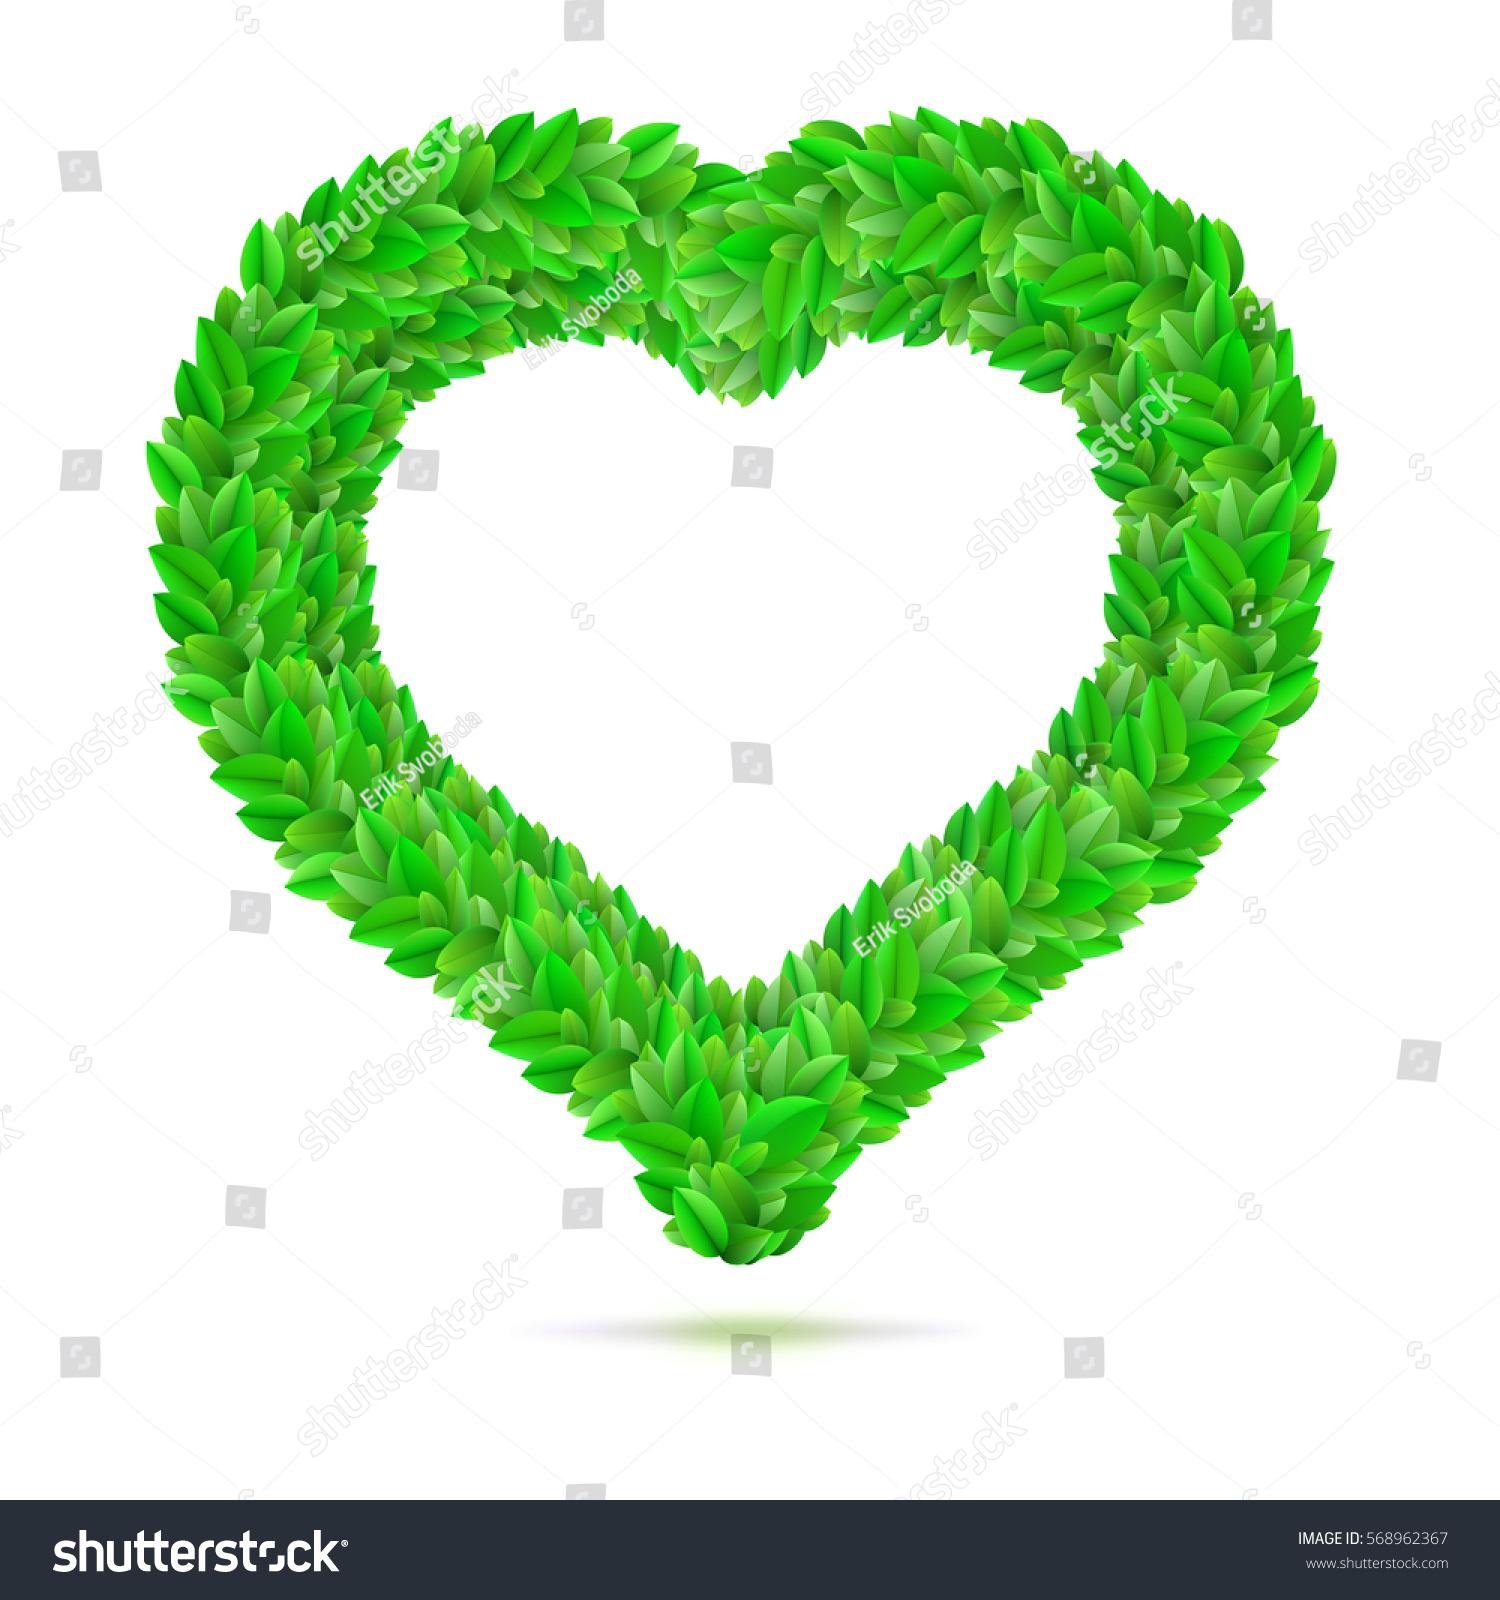 Heart Symbol Green Leaves Love Nature Stock Vector Royalty Free